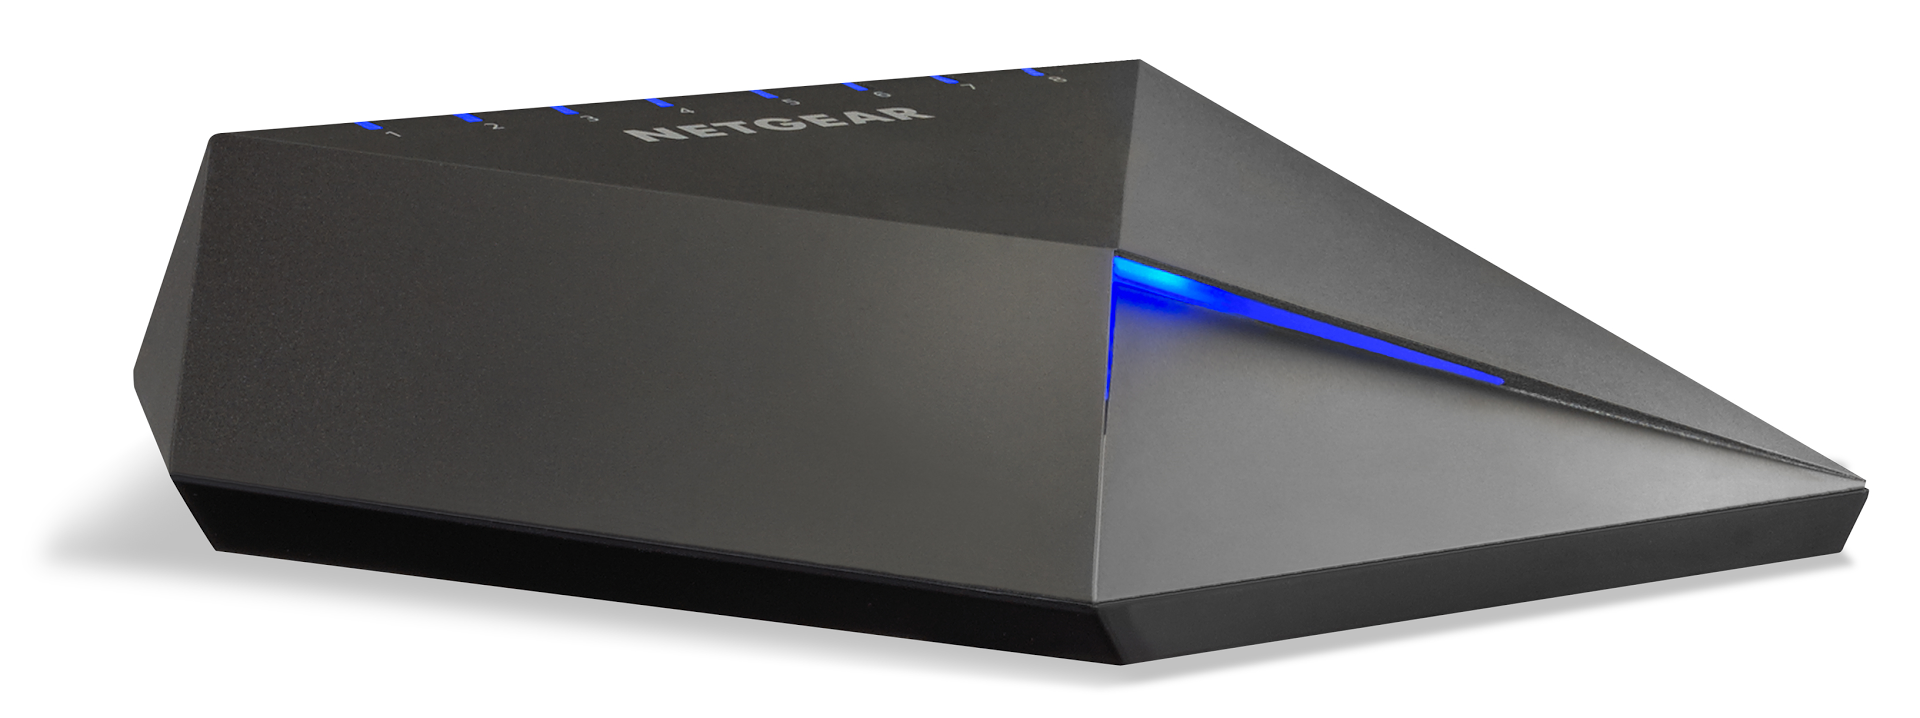 The S8000 Switch makes the Nighthawk ideal for gaming